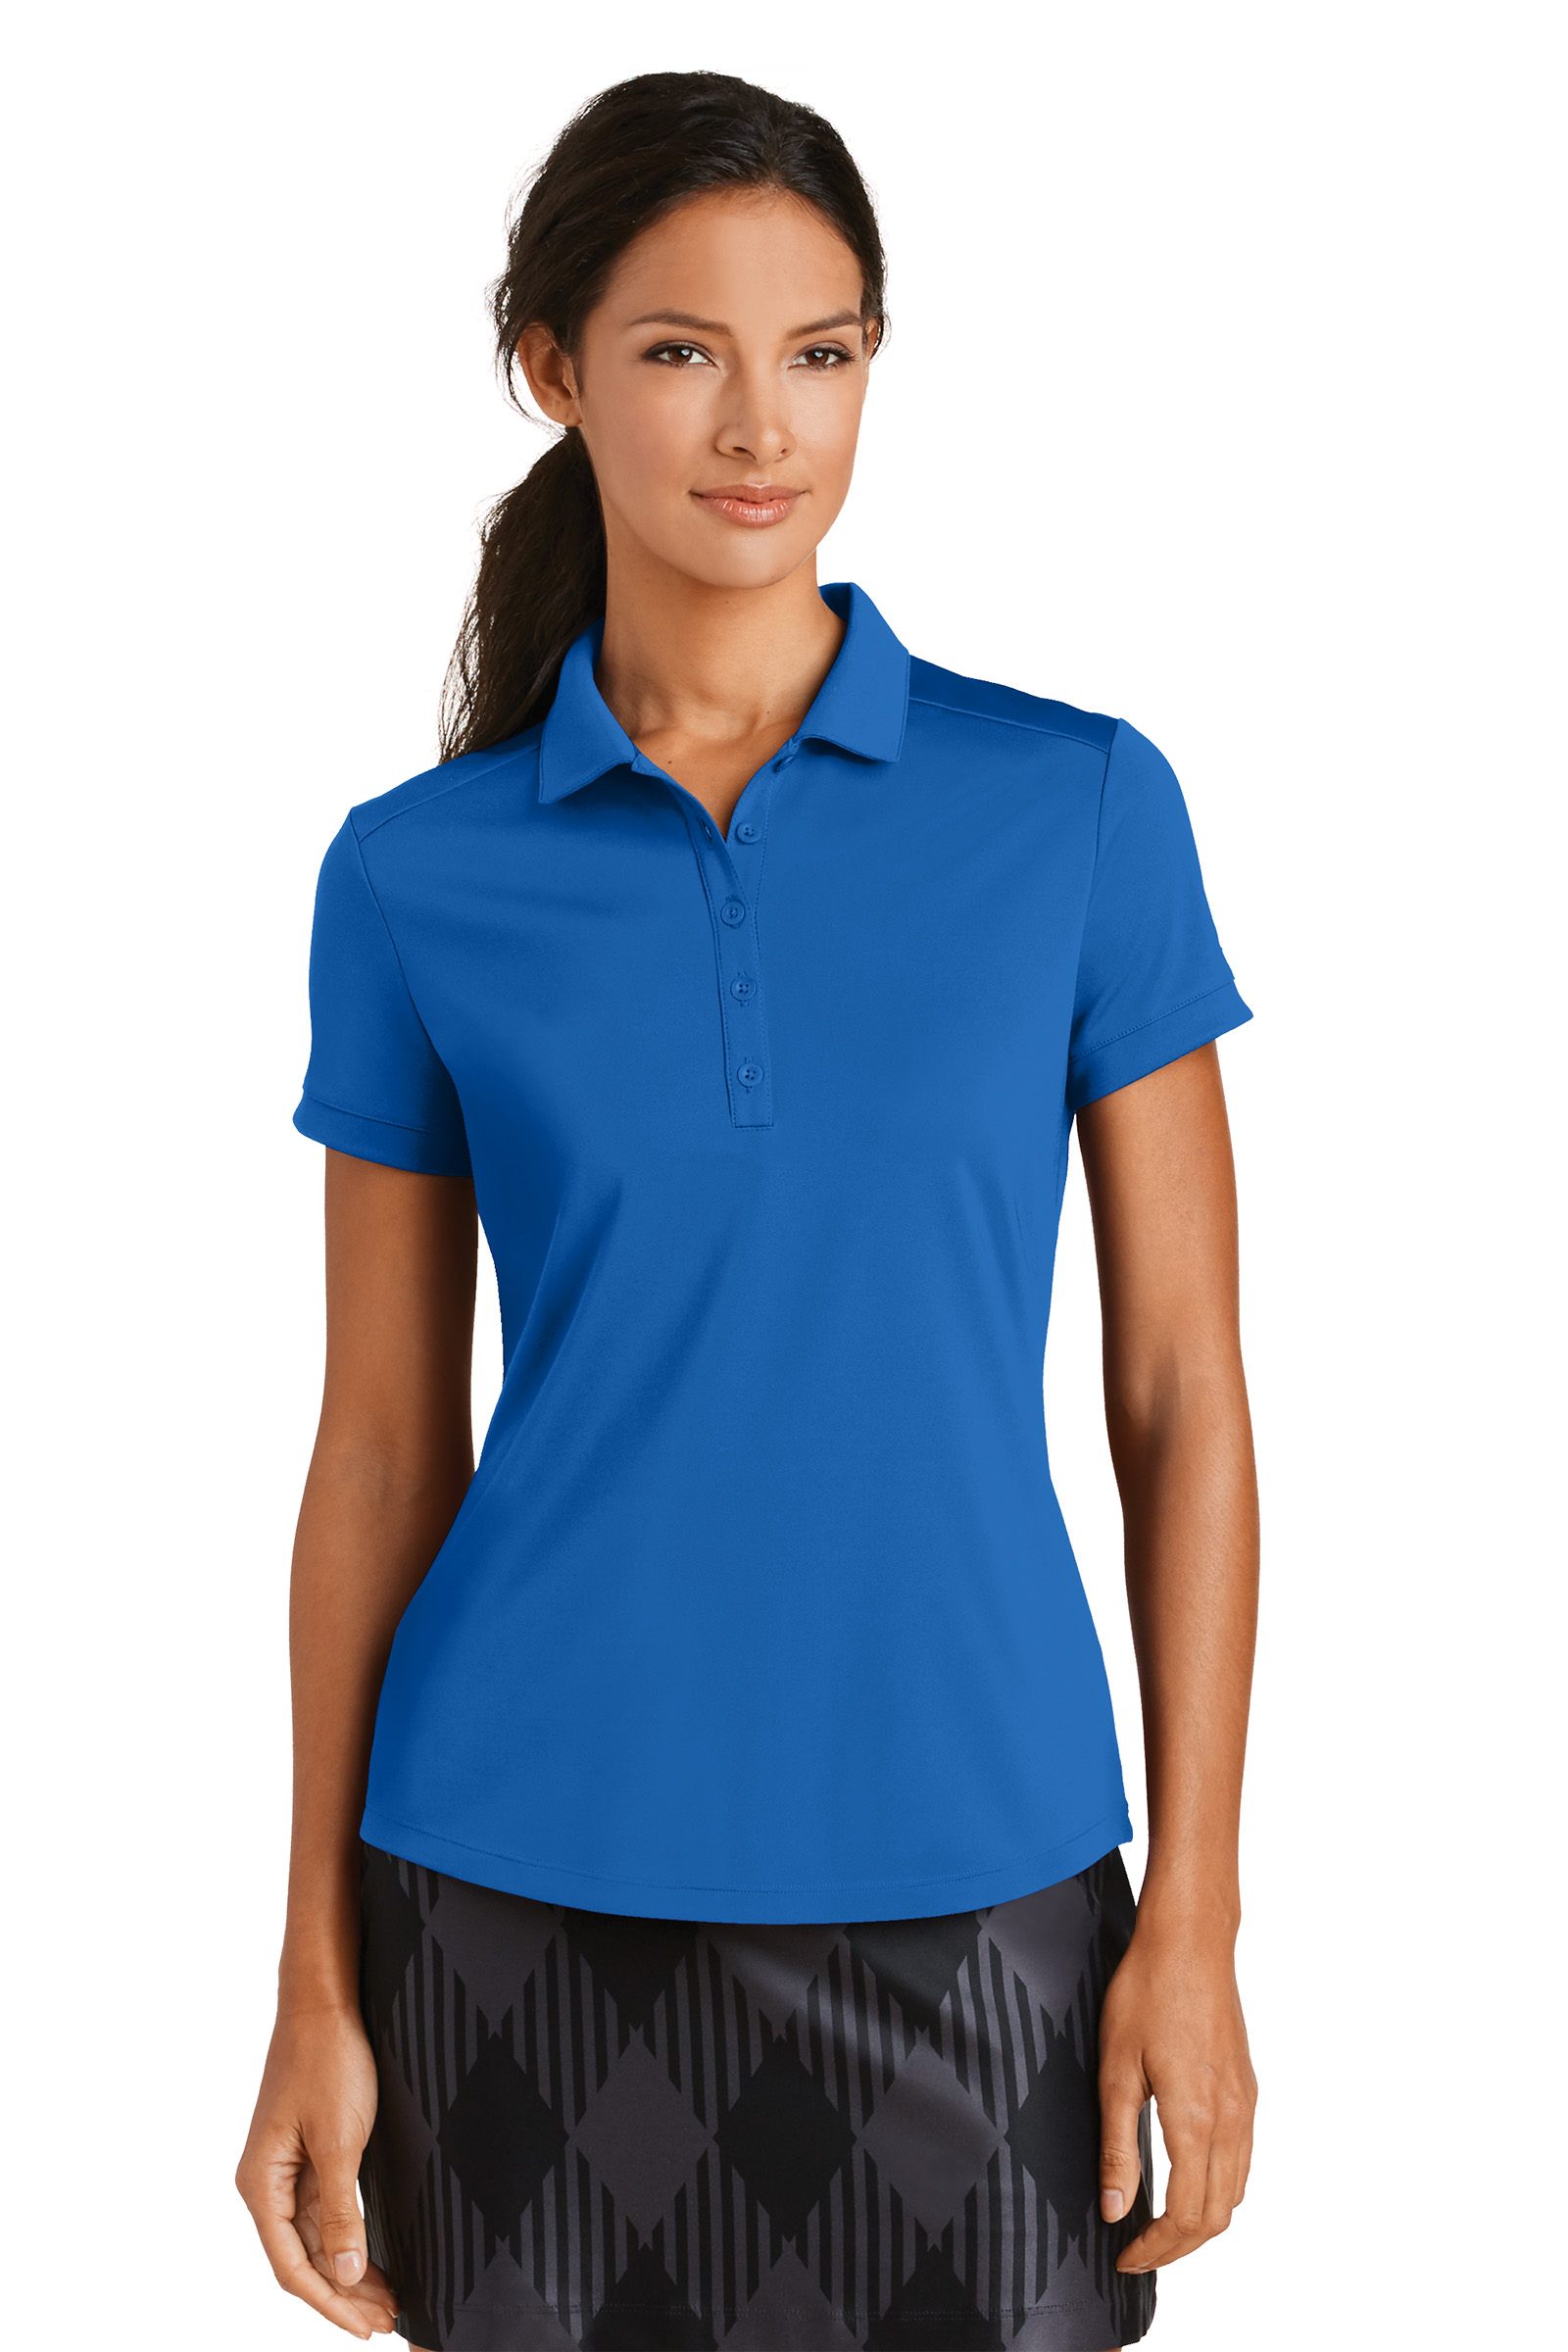 Nike Golf Embroidered Women's Dri-FIT Players Modern Fit Polo